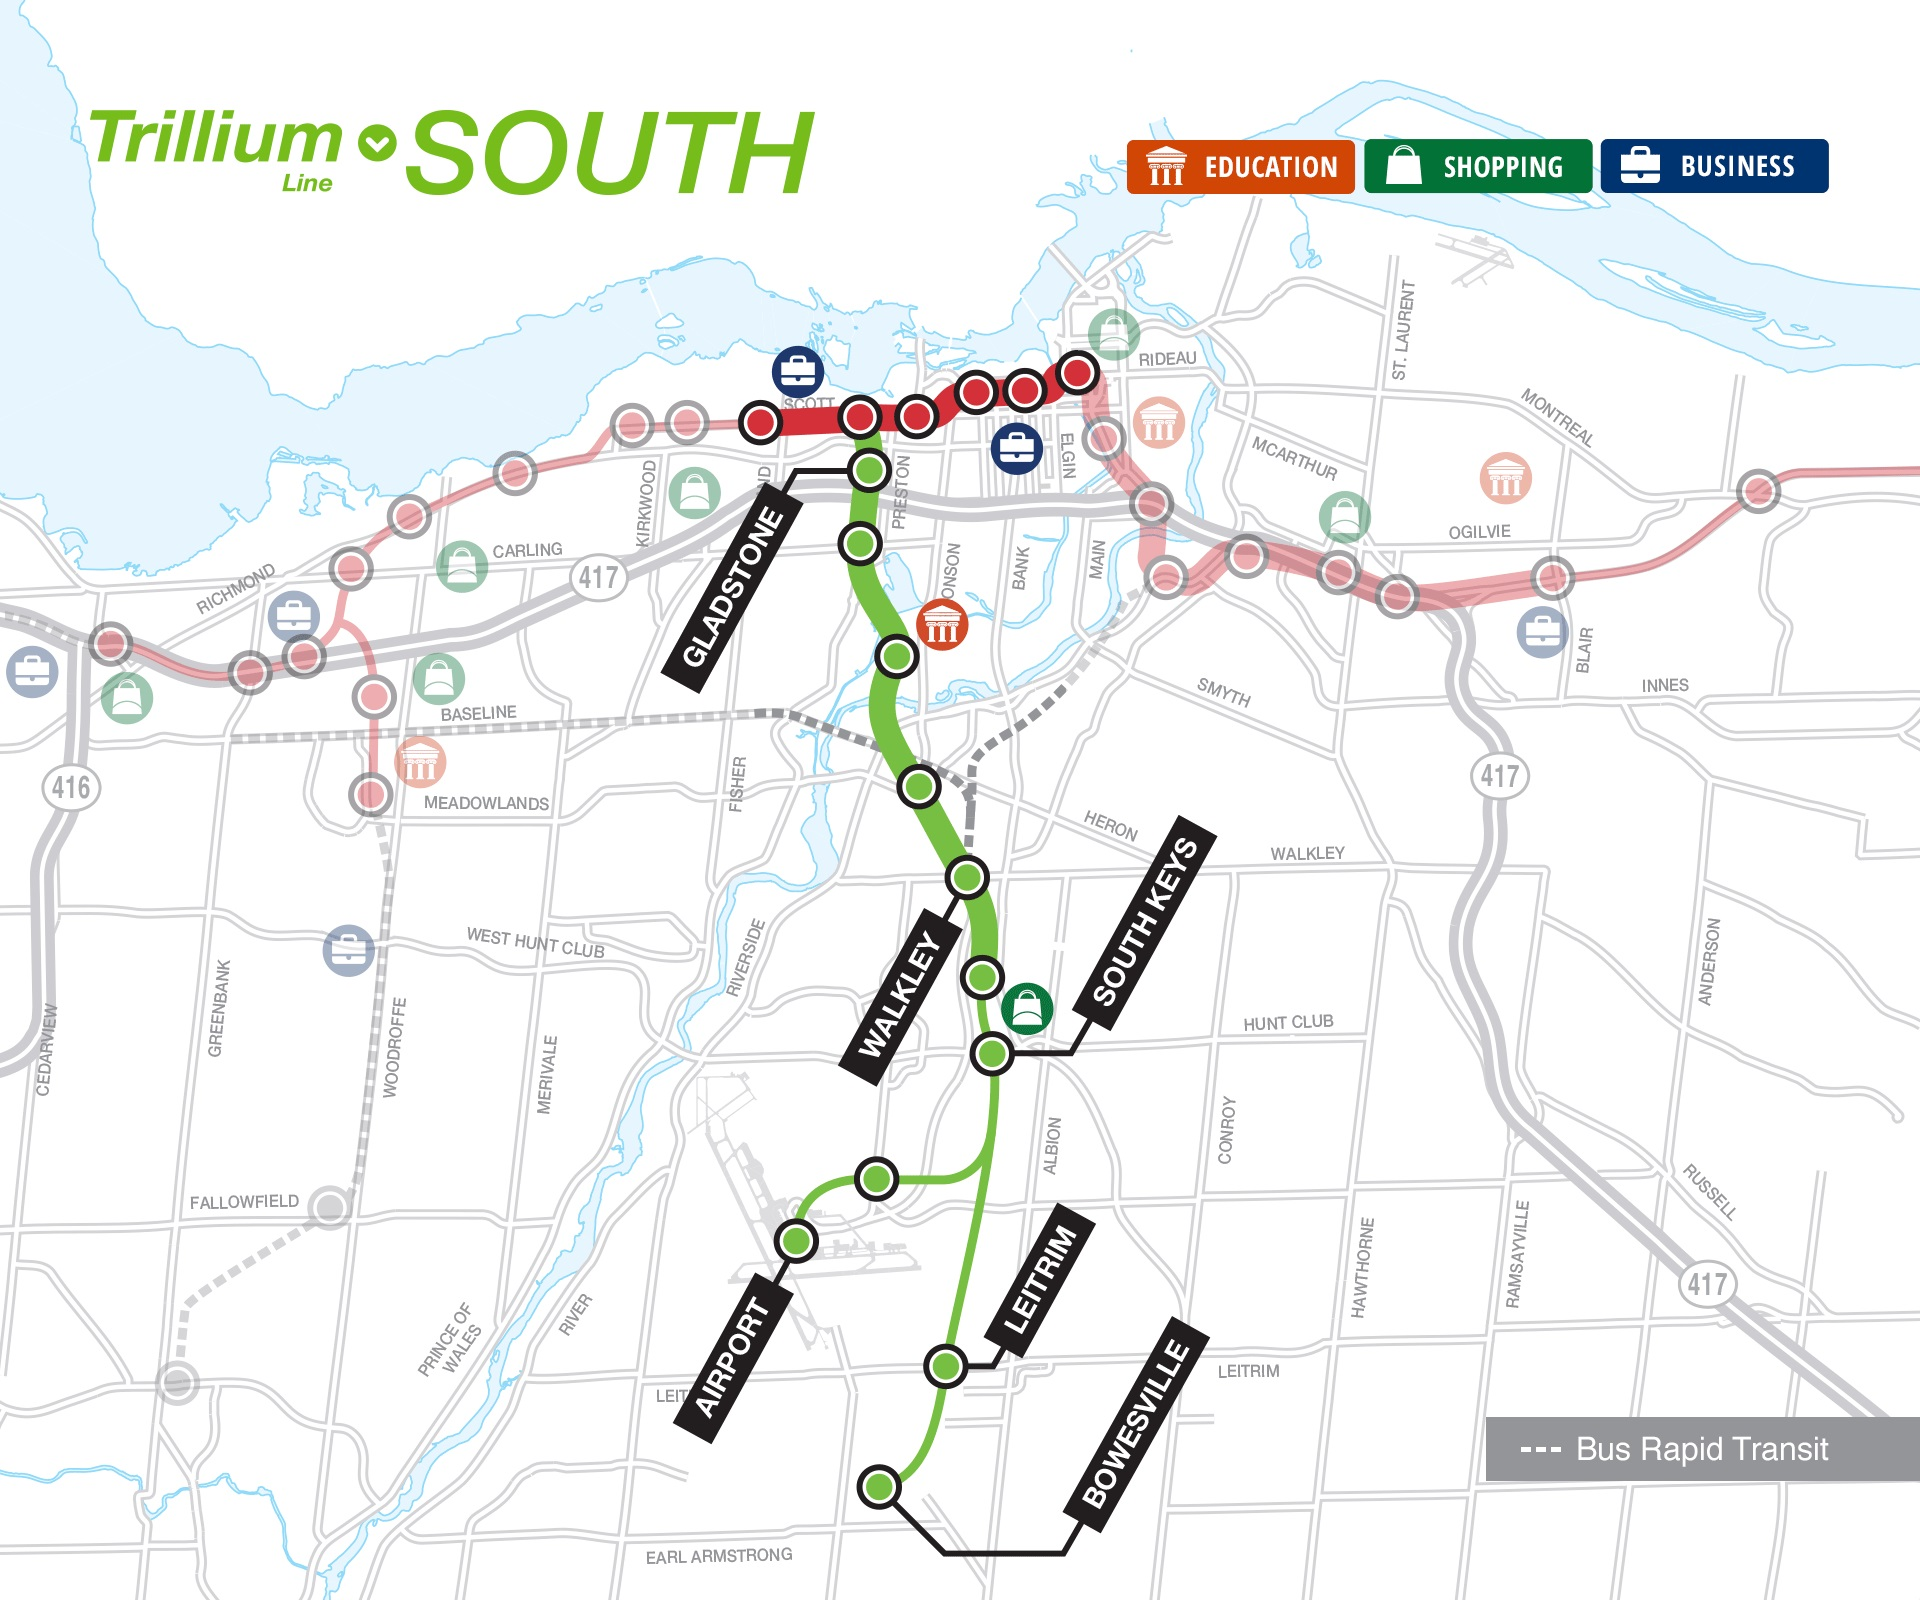 O-Train Trillium South map